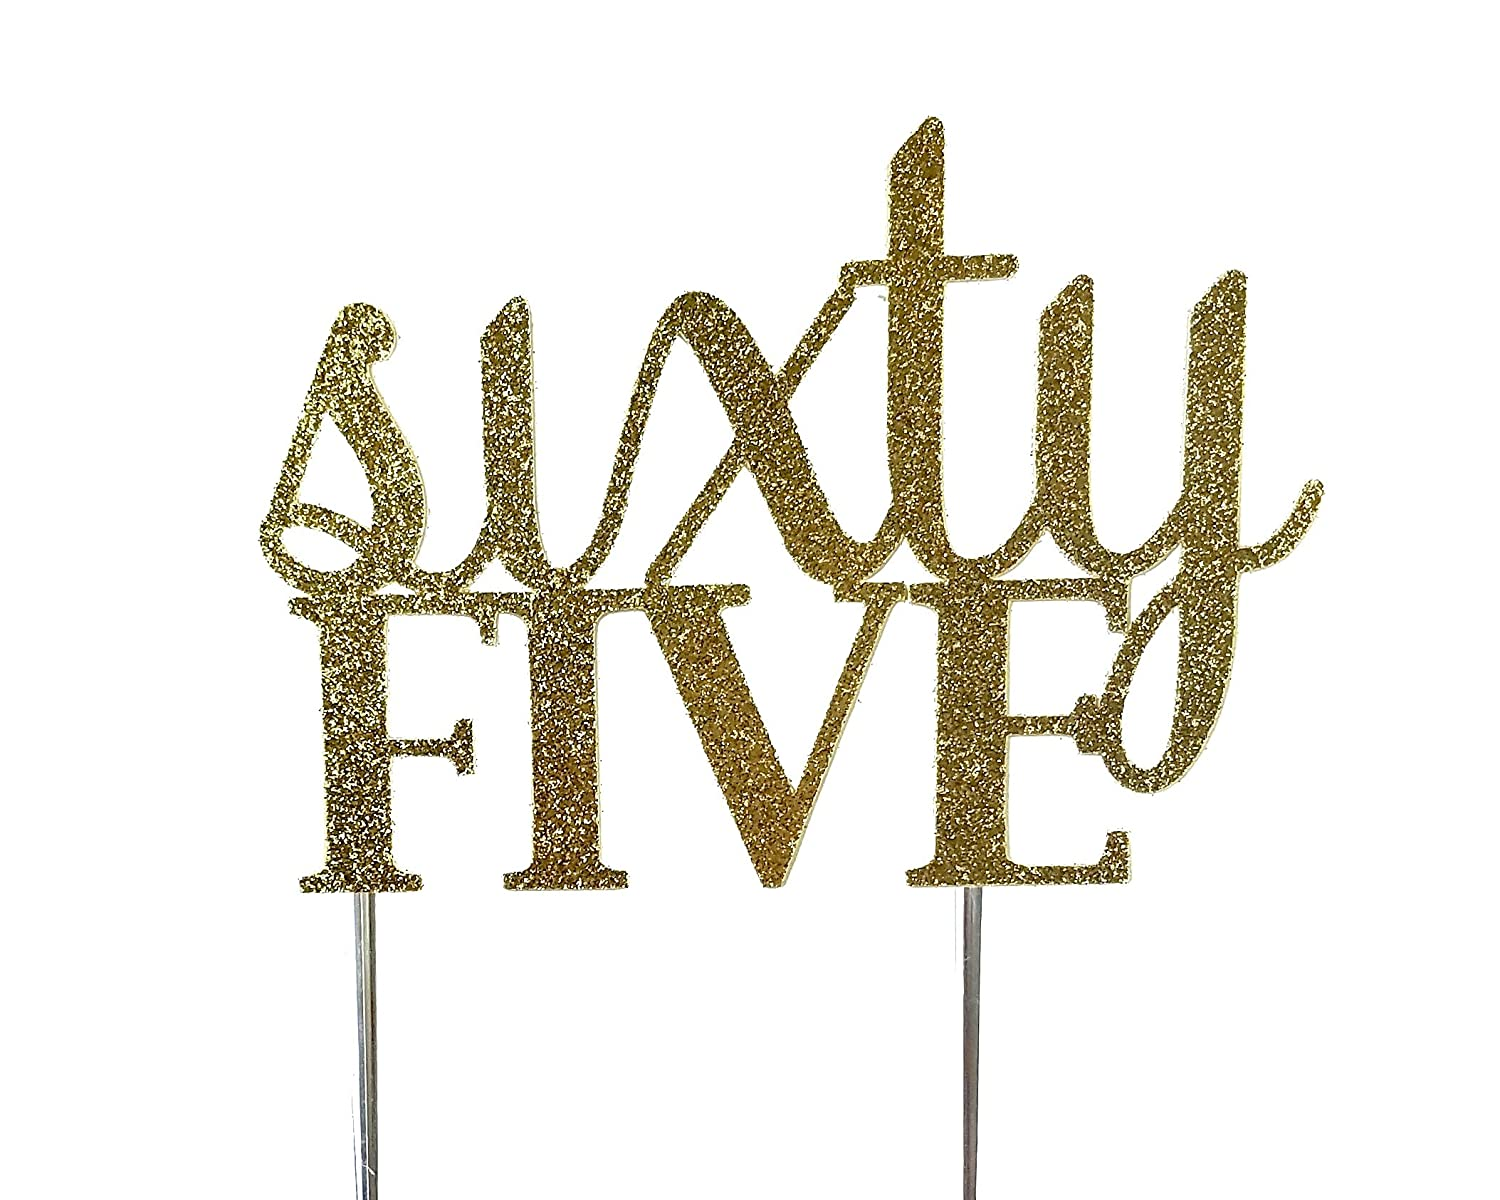 Handmade 65th Sixty-Fifth Birthday Cake Topper Decoration- sixty five - Made in USA with Double Sided Gold Glitter Stock